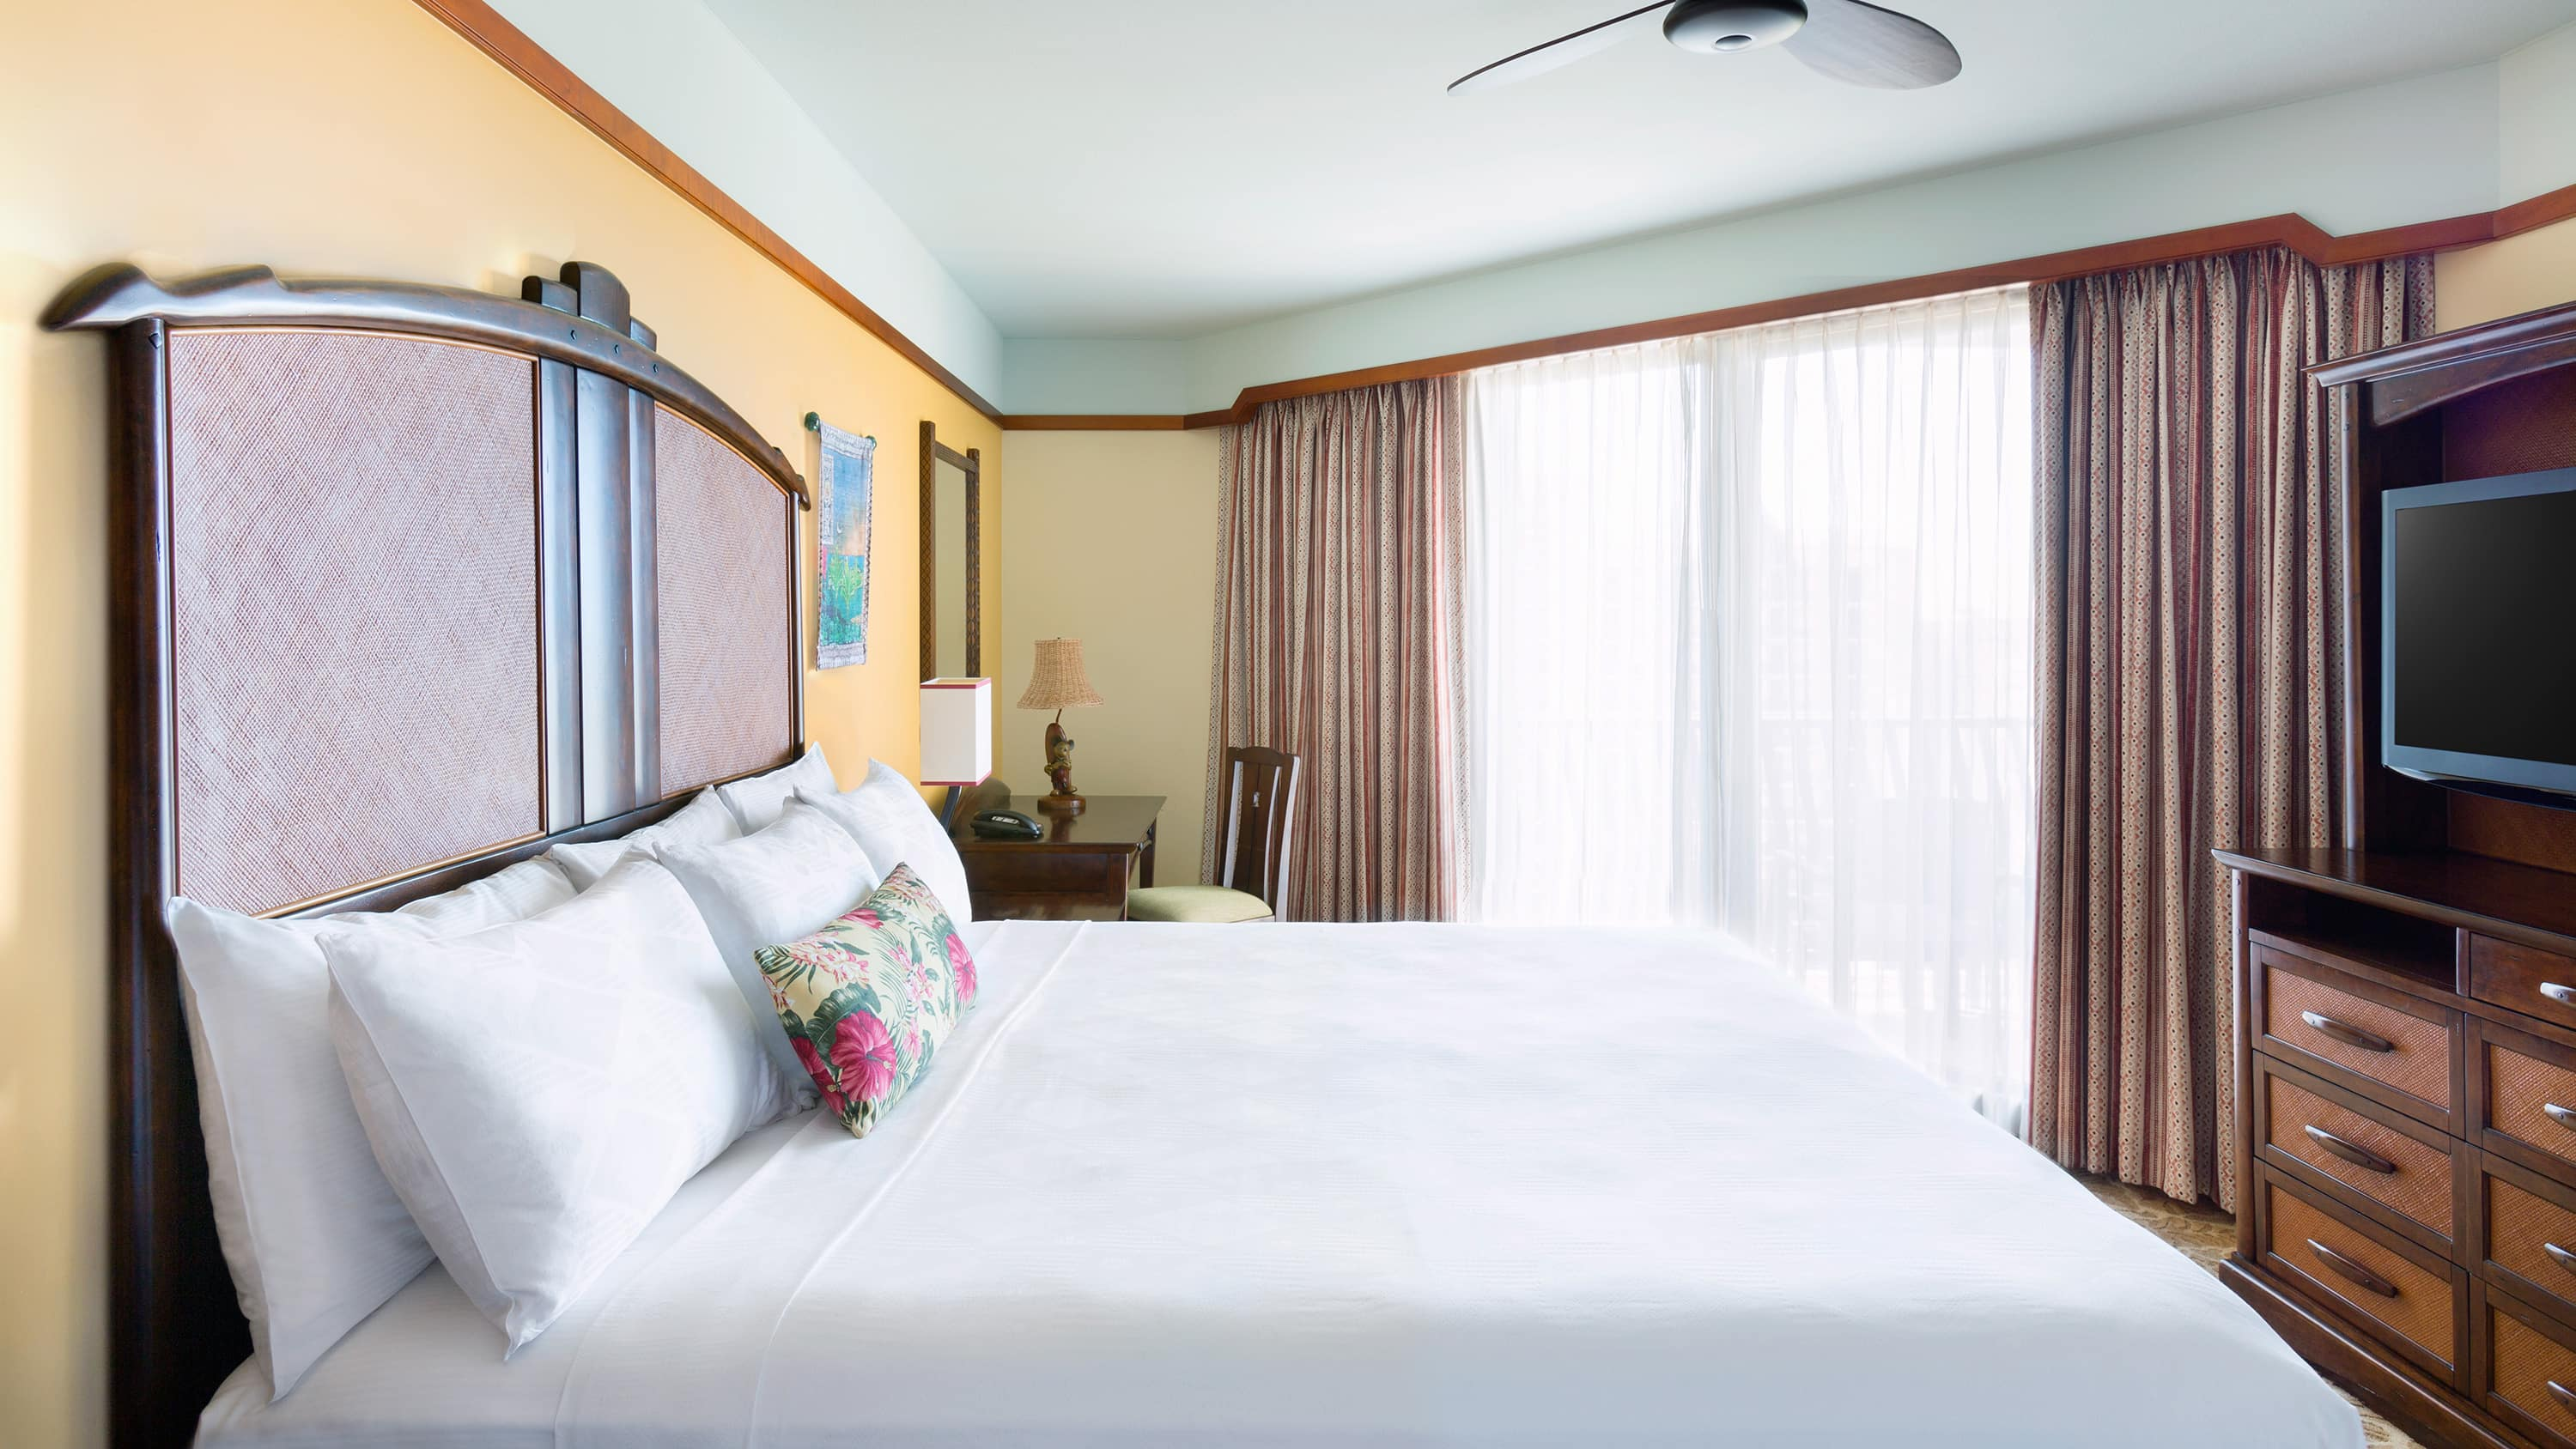 A room with a bed, a TV, a mirror, 2 lamps, a fan and curtains